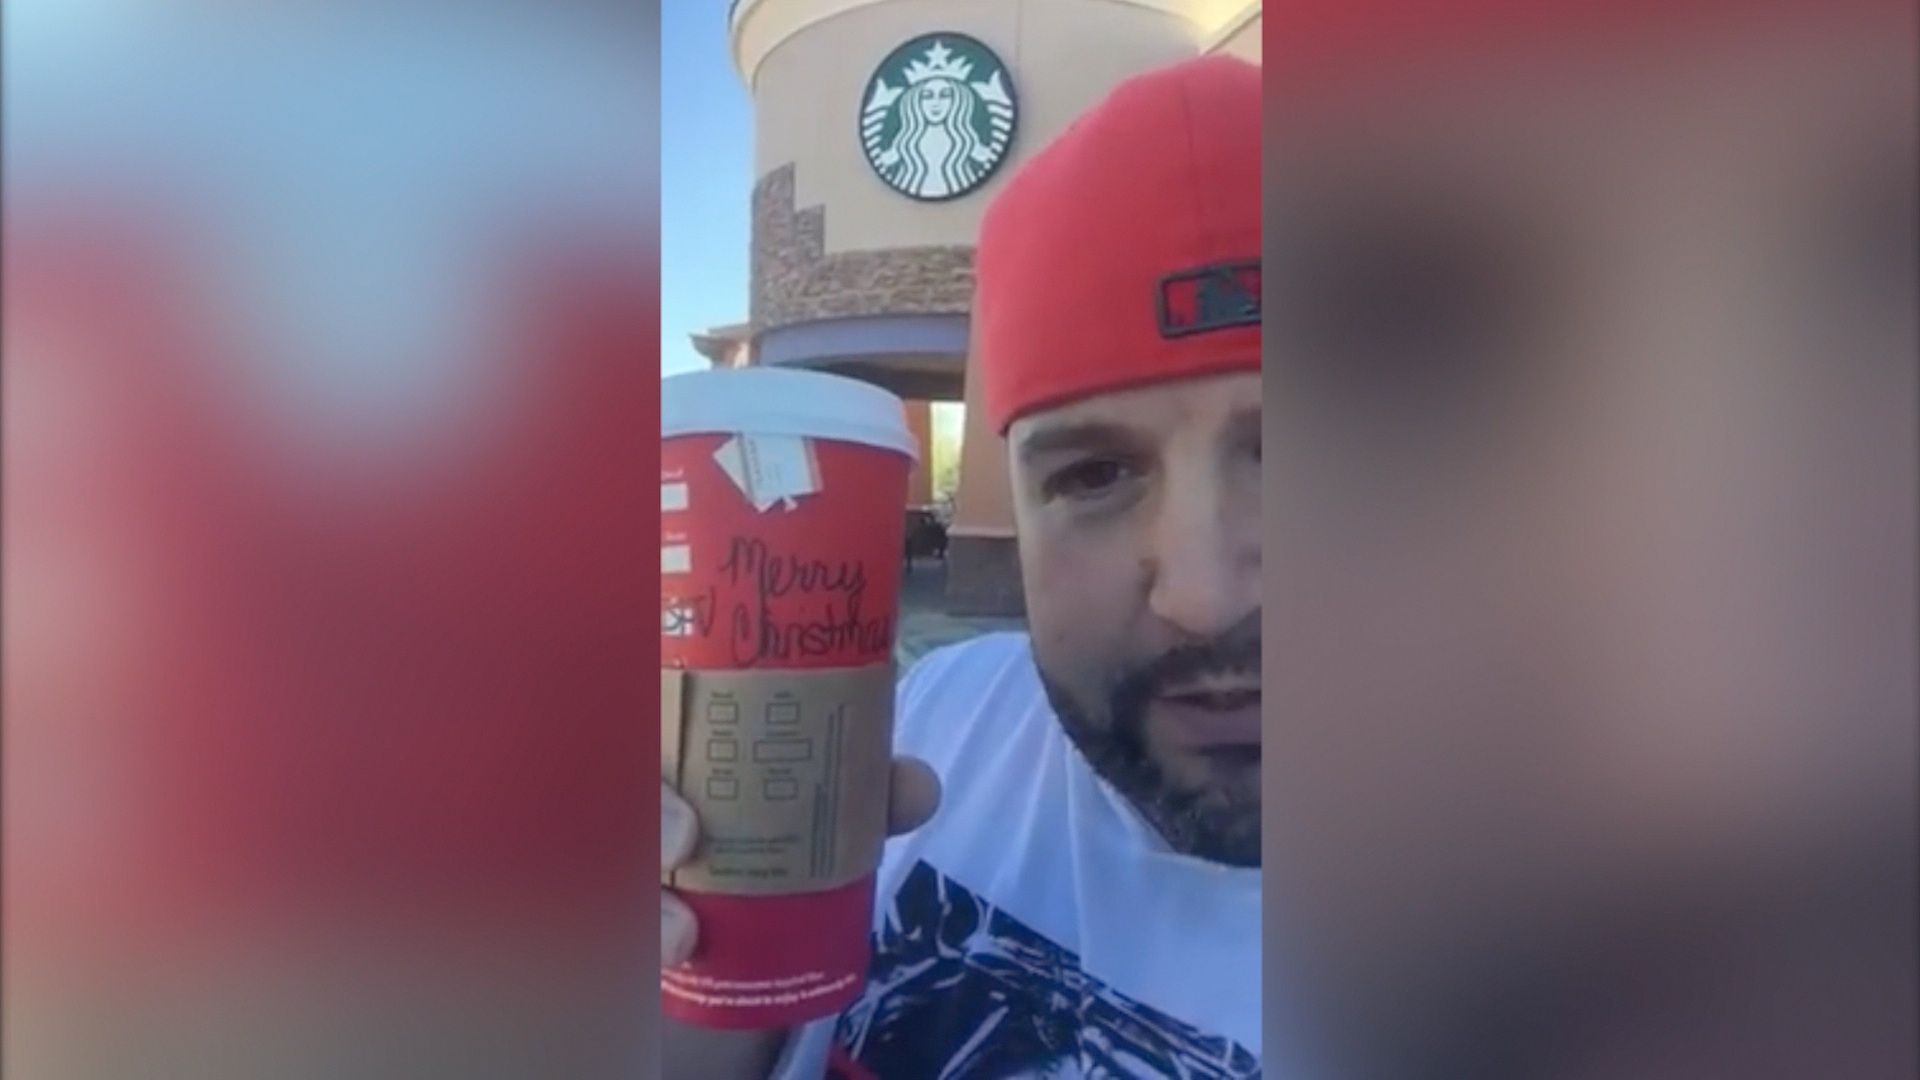 Starbucks 'removed Christmas from their cups because they hate Jesus,' Christian says in viral Facebook video